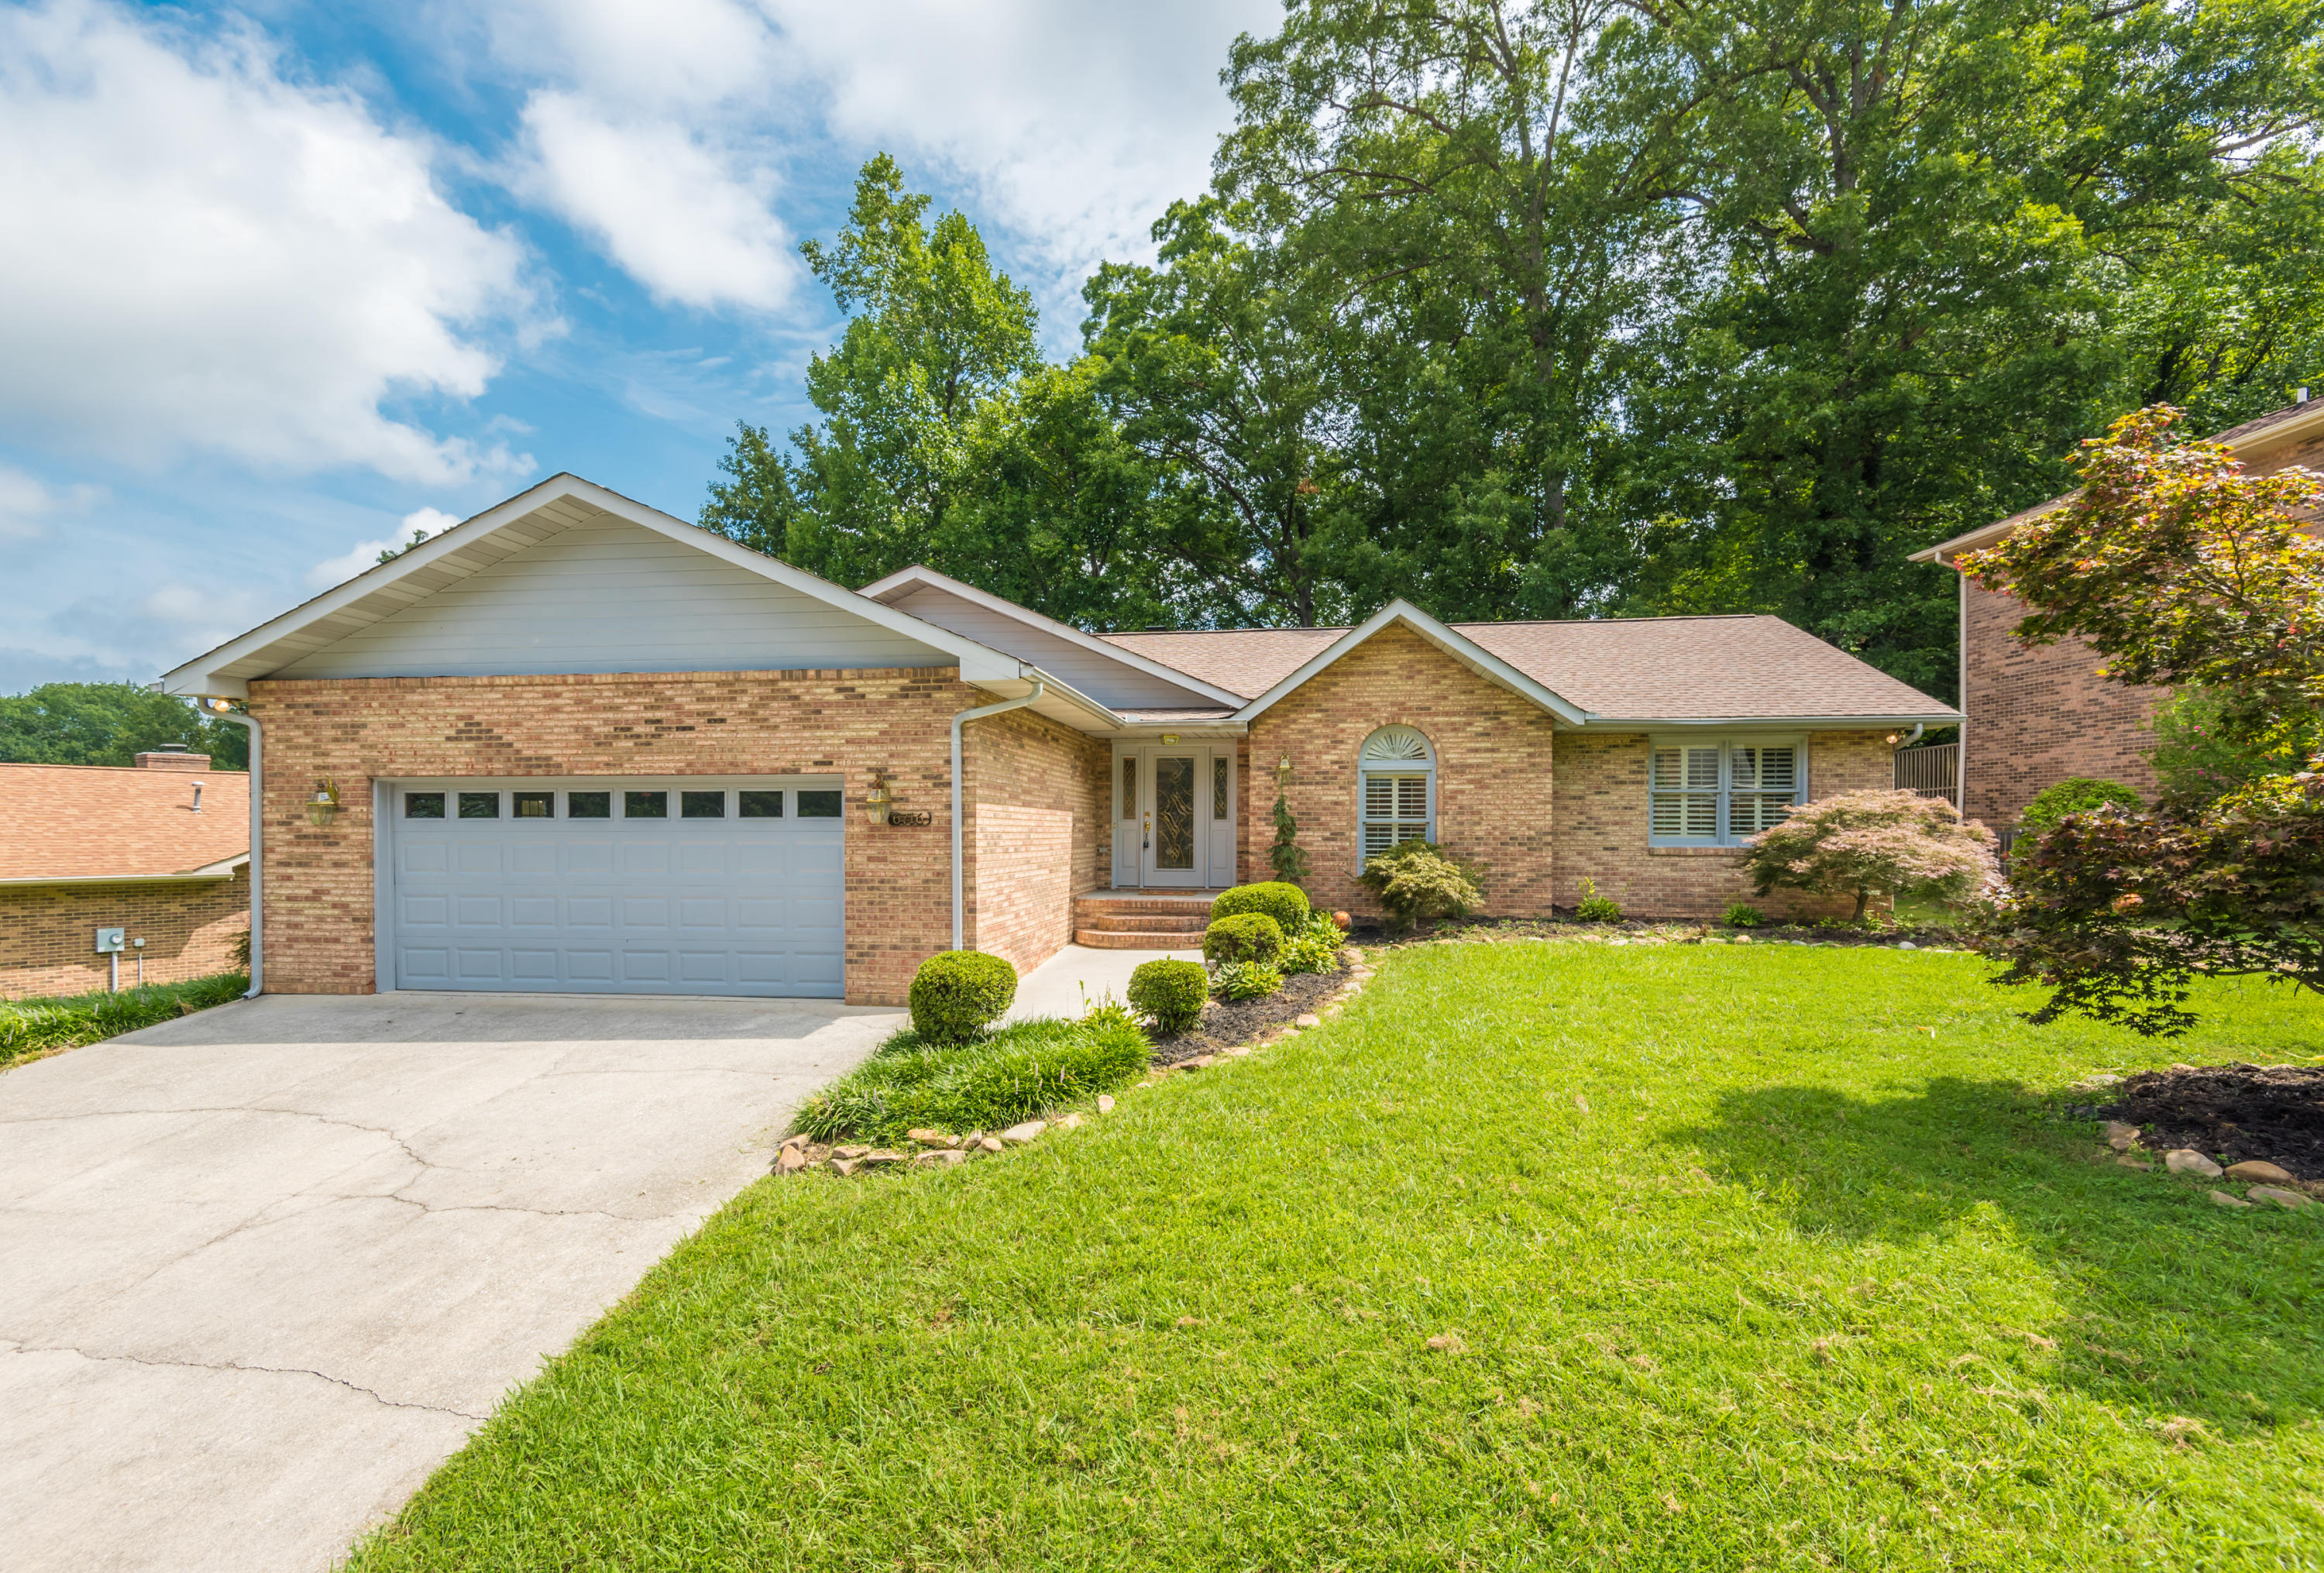 6716 Saddle Creek, Knoxville, Tennessee, United States 37921, 3 Bedrooms Bedrooms, ,2 BathroomsBathrooms,Single Family,For Sale,Saddle Creek,1126040